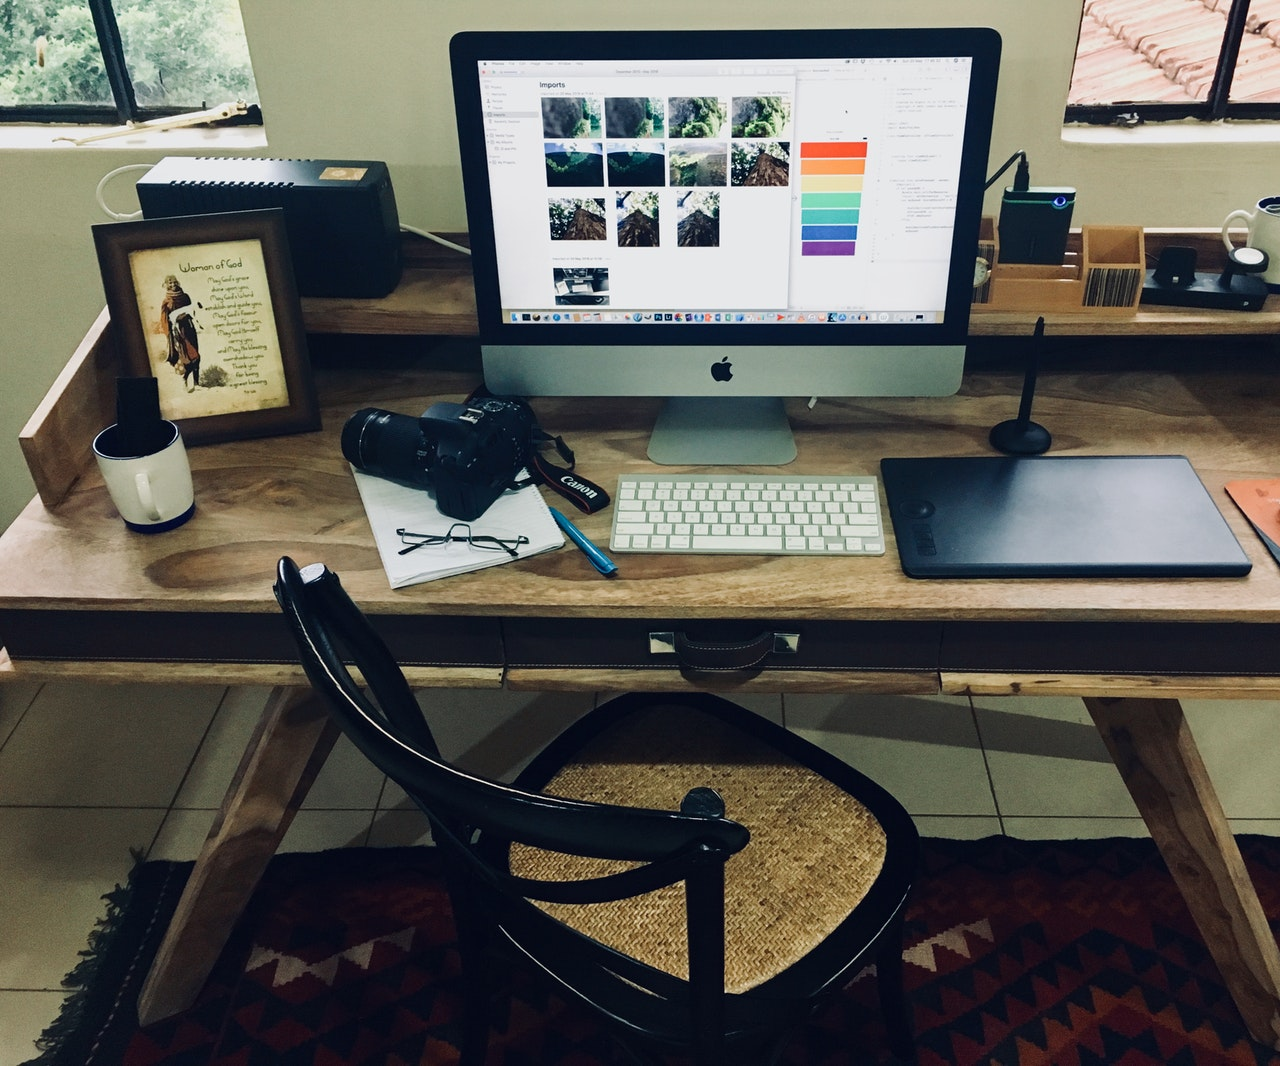 Working from Home – Office Ergonomics to help mind & body